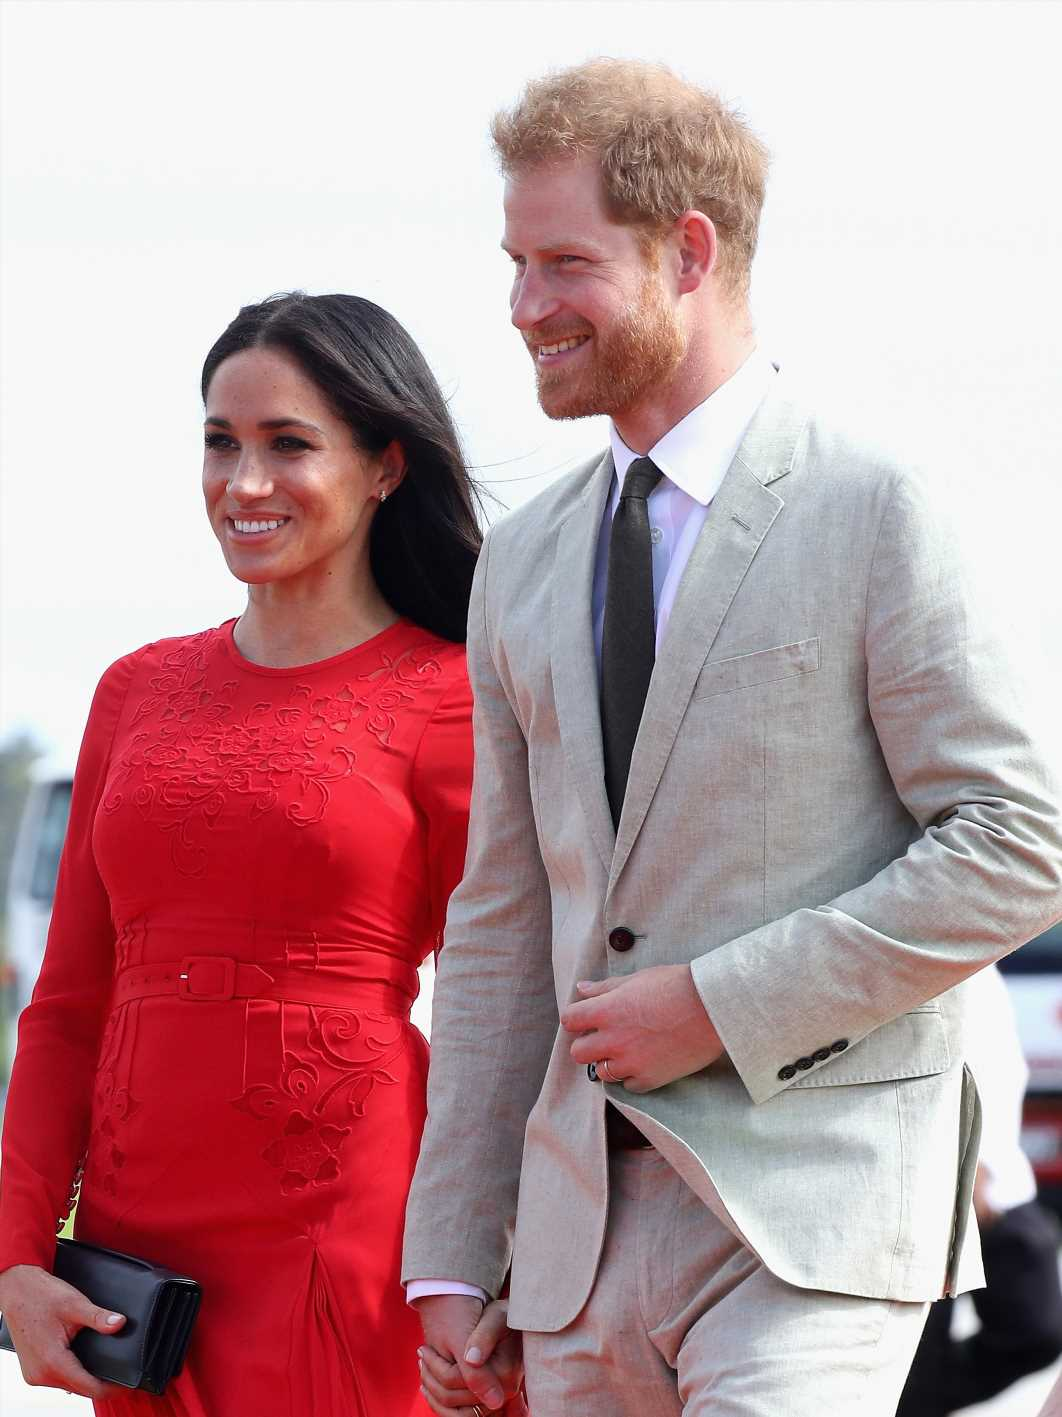 Meghan Markle and Prince Harry set for amazing date night